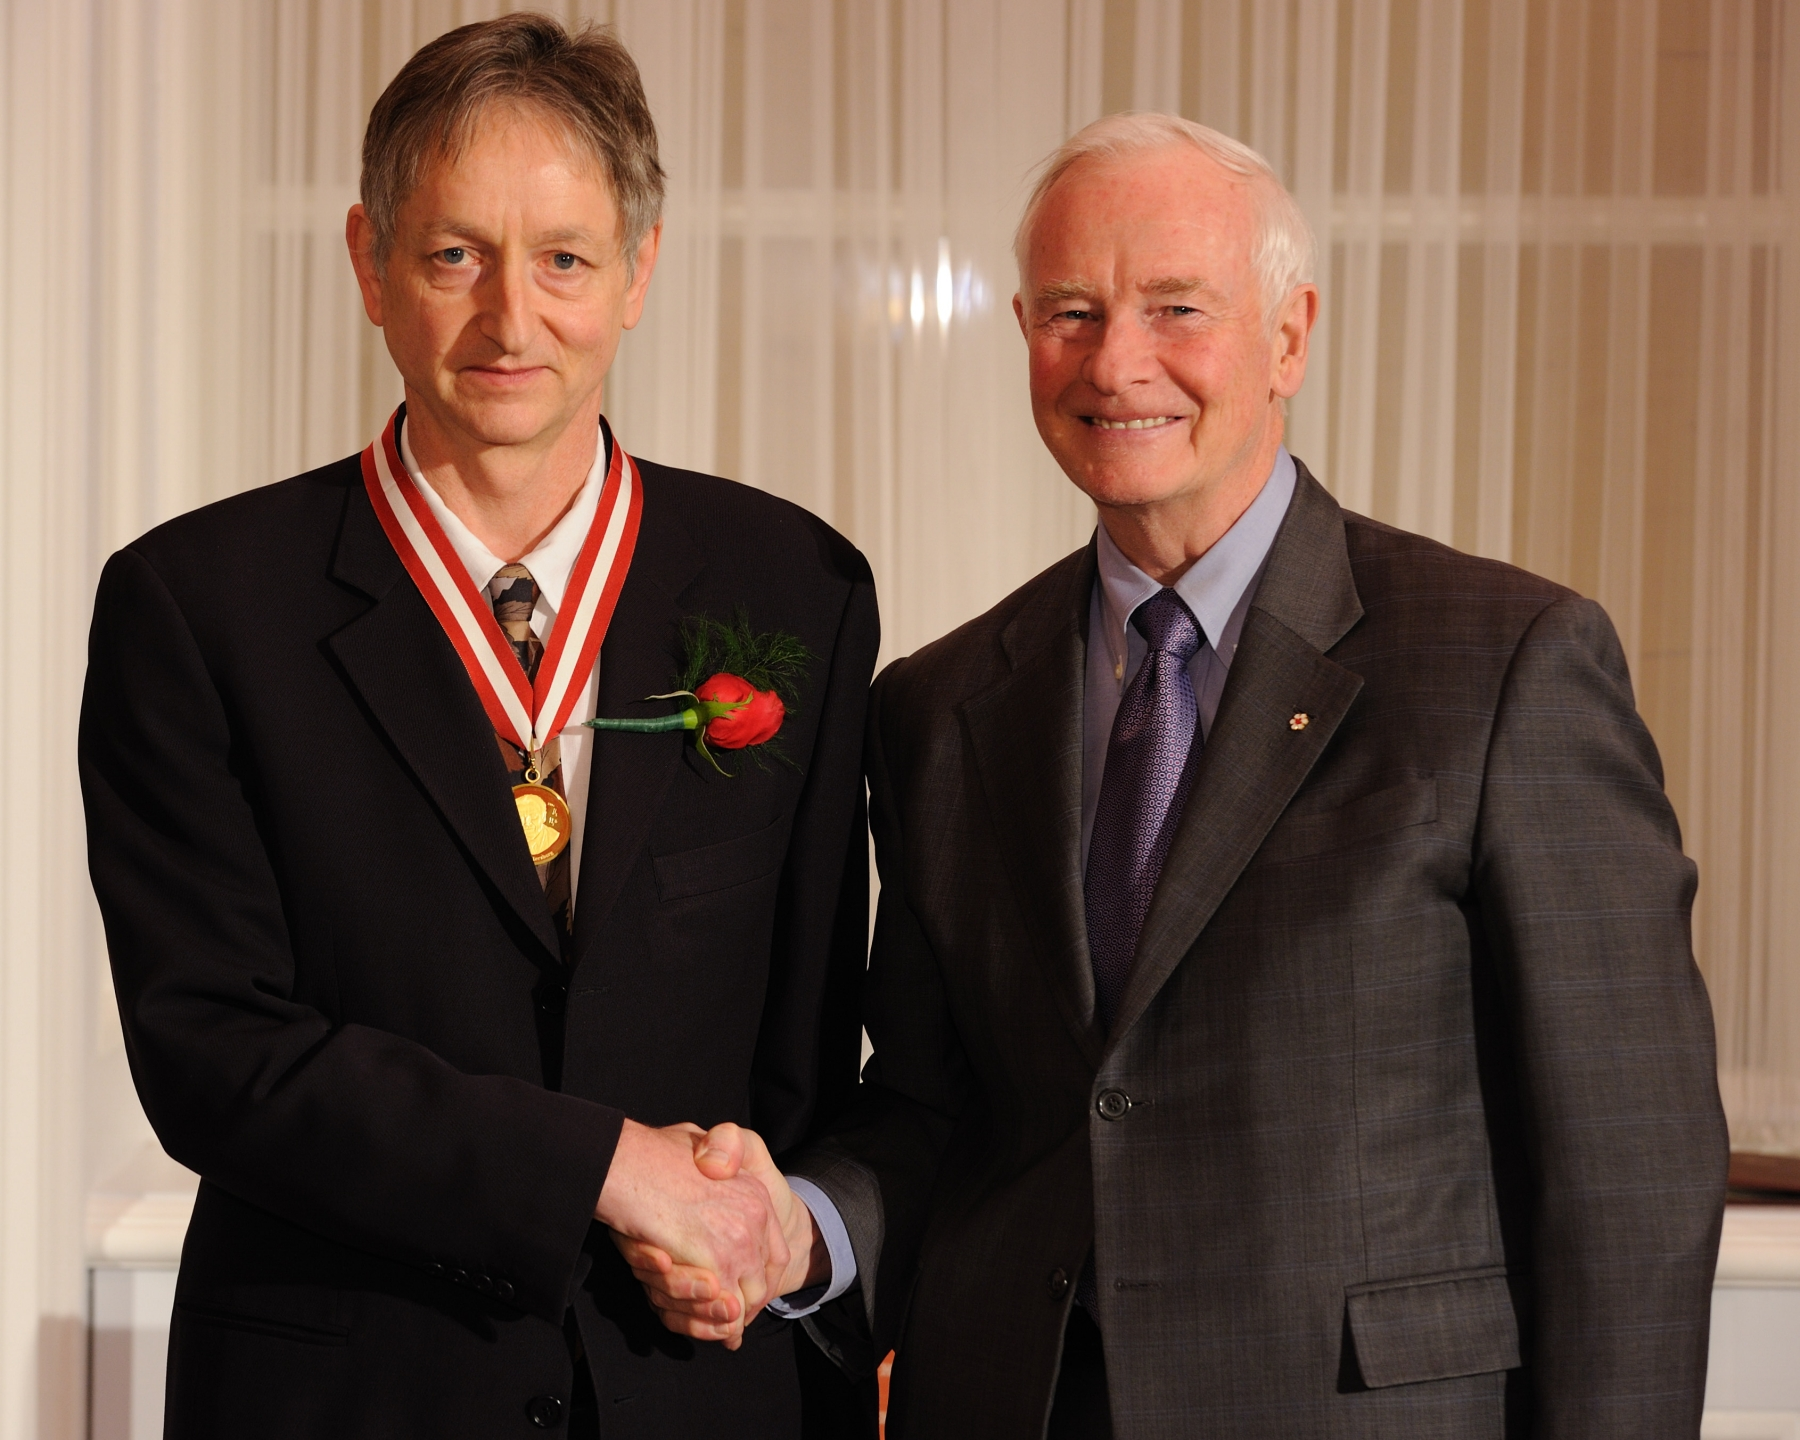 Geoffrey Hinton is the winner of the Gerhard Herzberg Canada Gold Medal for Science and Engineering. This award, NSERC's highest honour, recognizes research contributions characterized by both excellence and influence—two qualities that defined Dr. Herzberg's illustrious career. It is awarded annually to an individual who has demonstrated sustained excellence and influence in research for a body of work conducted in Canada that has substantially advanced the natural sciences or engineering fields.